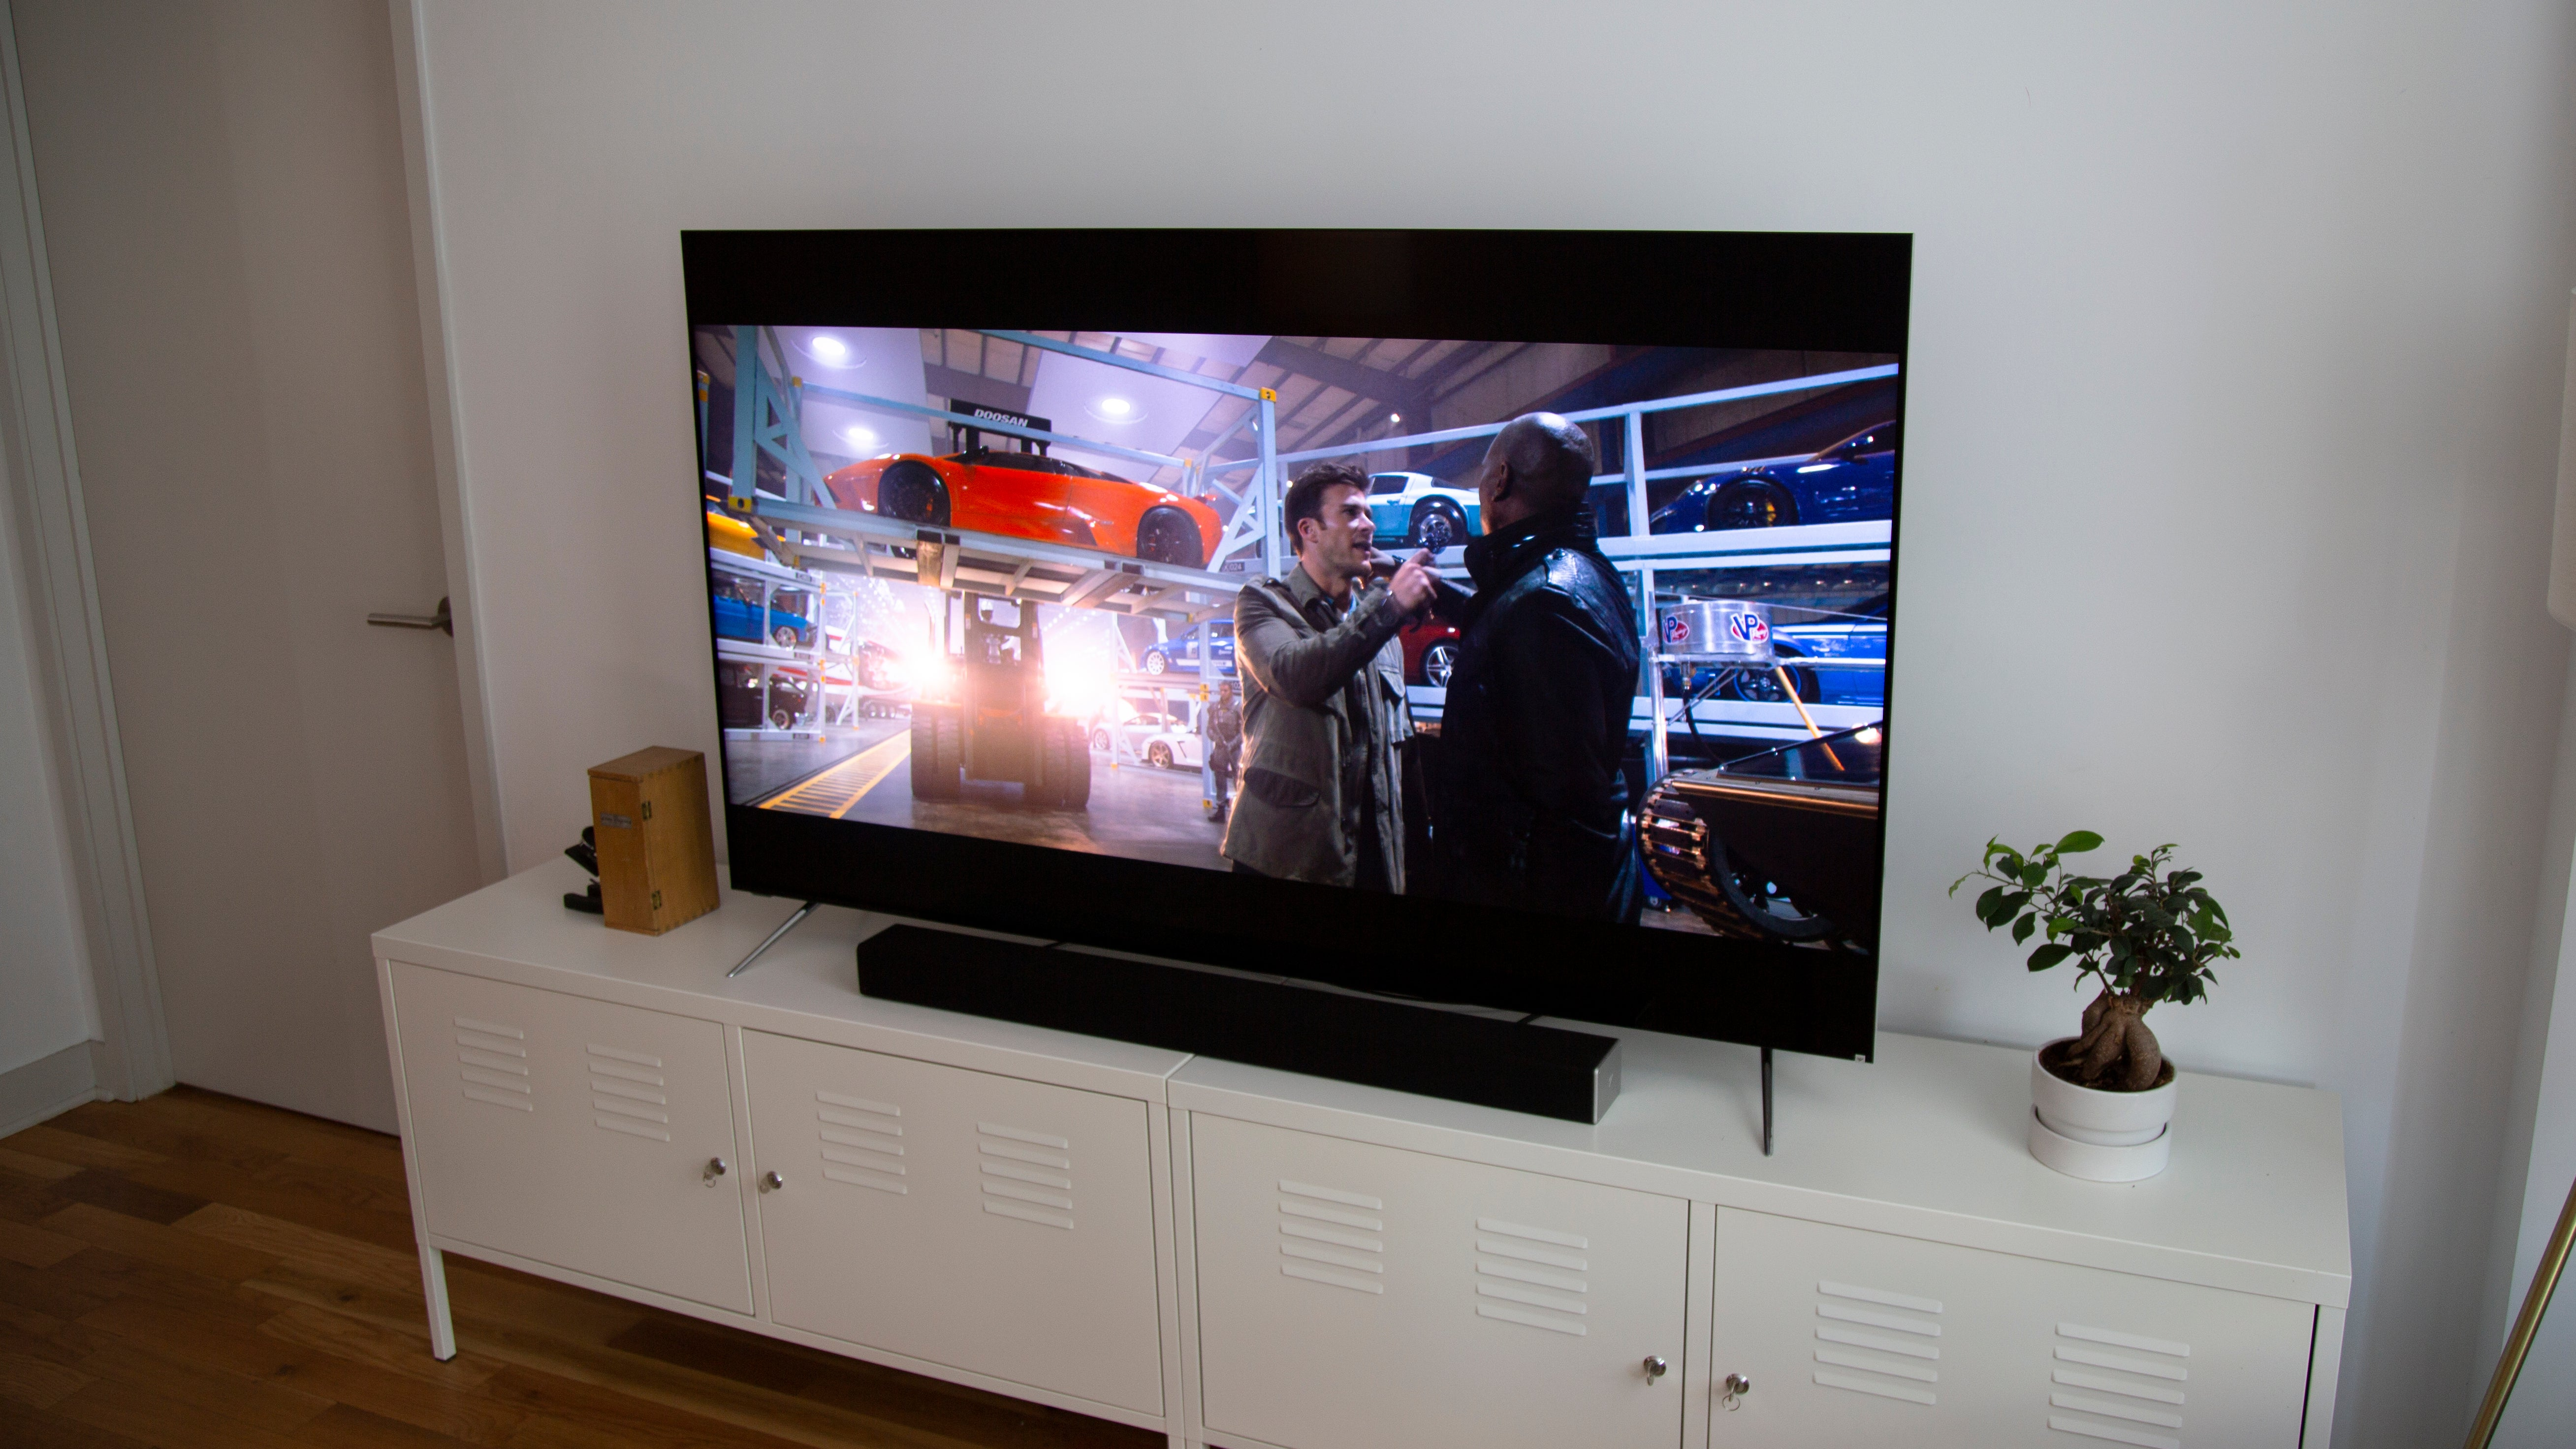 Vizio's Fancy New TV Is A Hell Of A Spectacle | Gizmodo